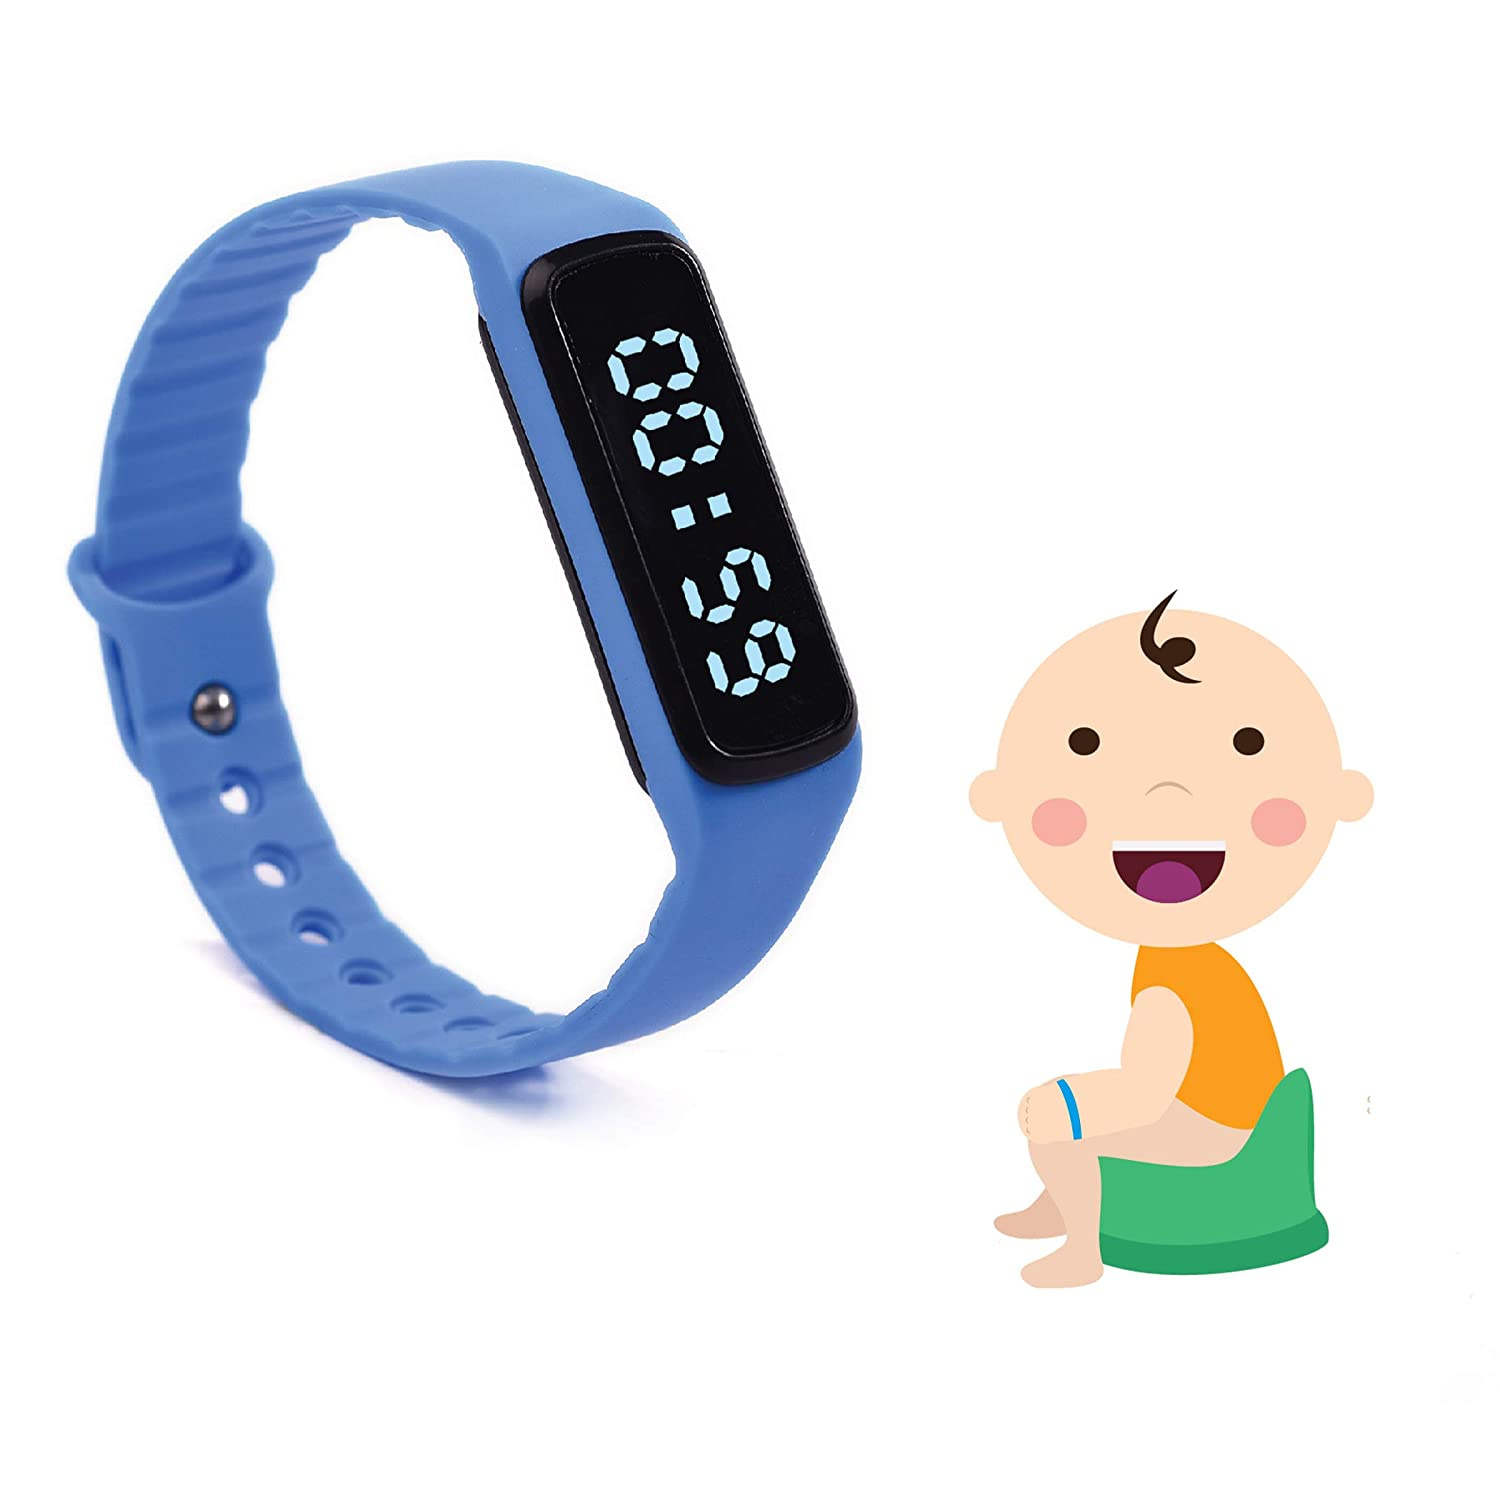 The Brand New Designed Potty Training Bracelet (Blue) with Water Resistance Function and Small Sized Watchband - Made with 100% Non-Toxic, BPA/Latex Free Silicone Rubber CalPalmy